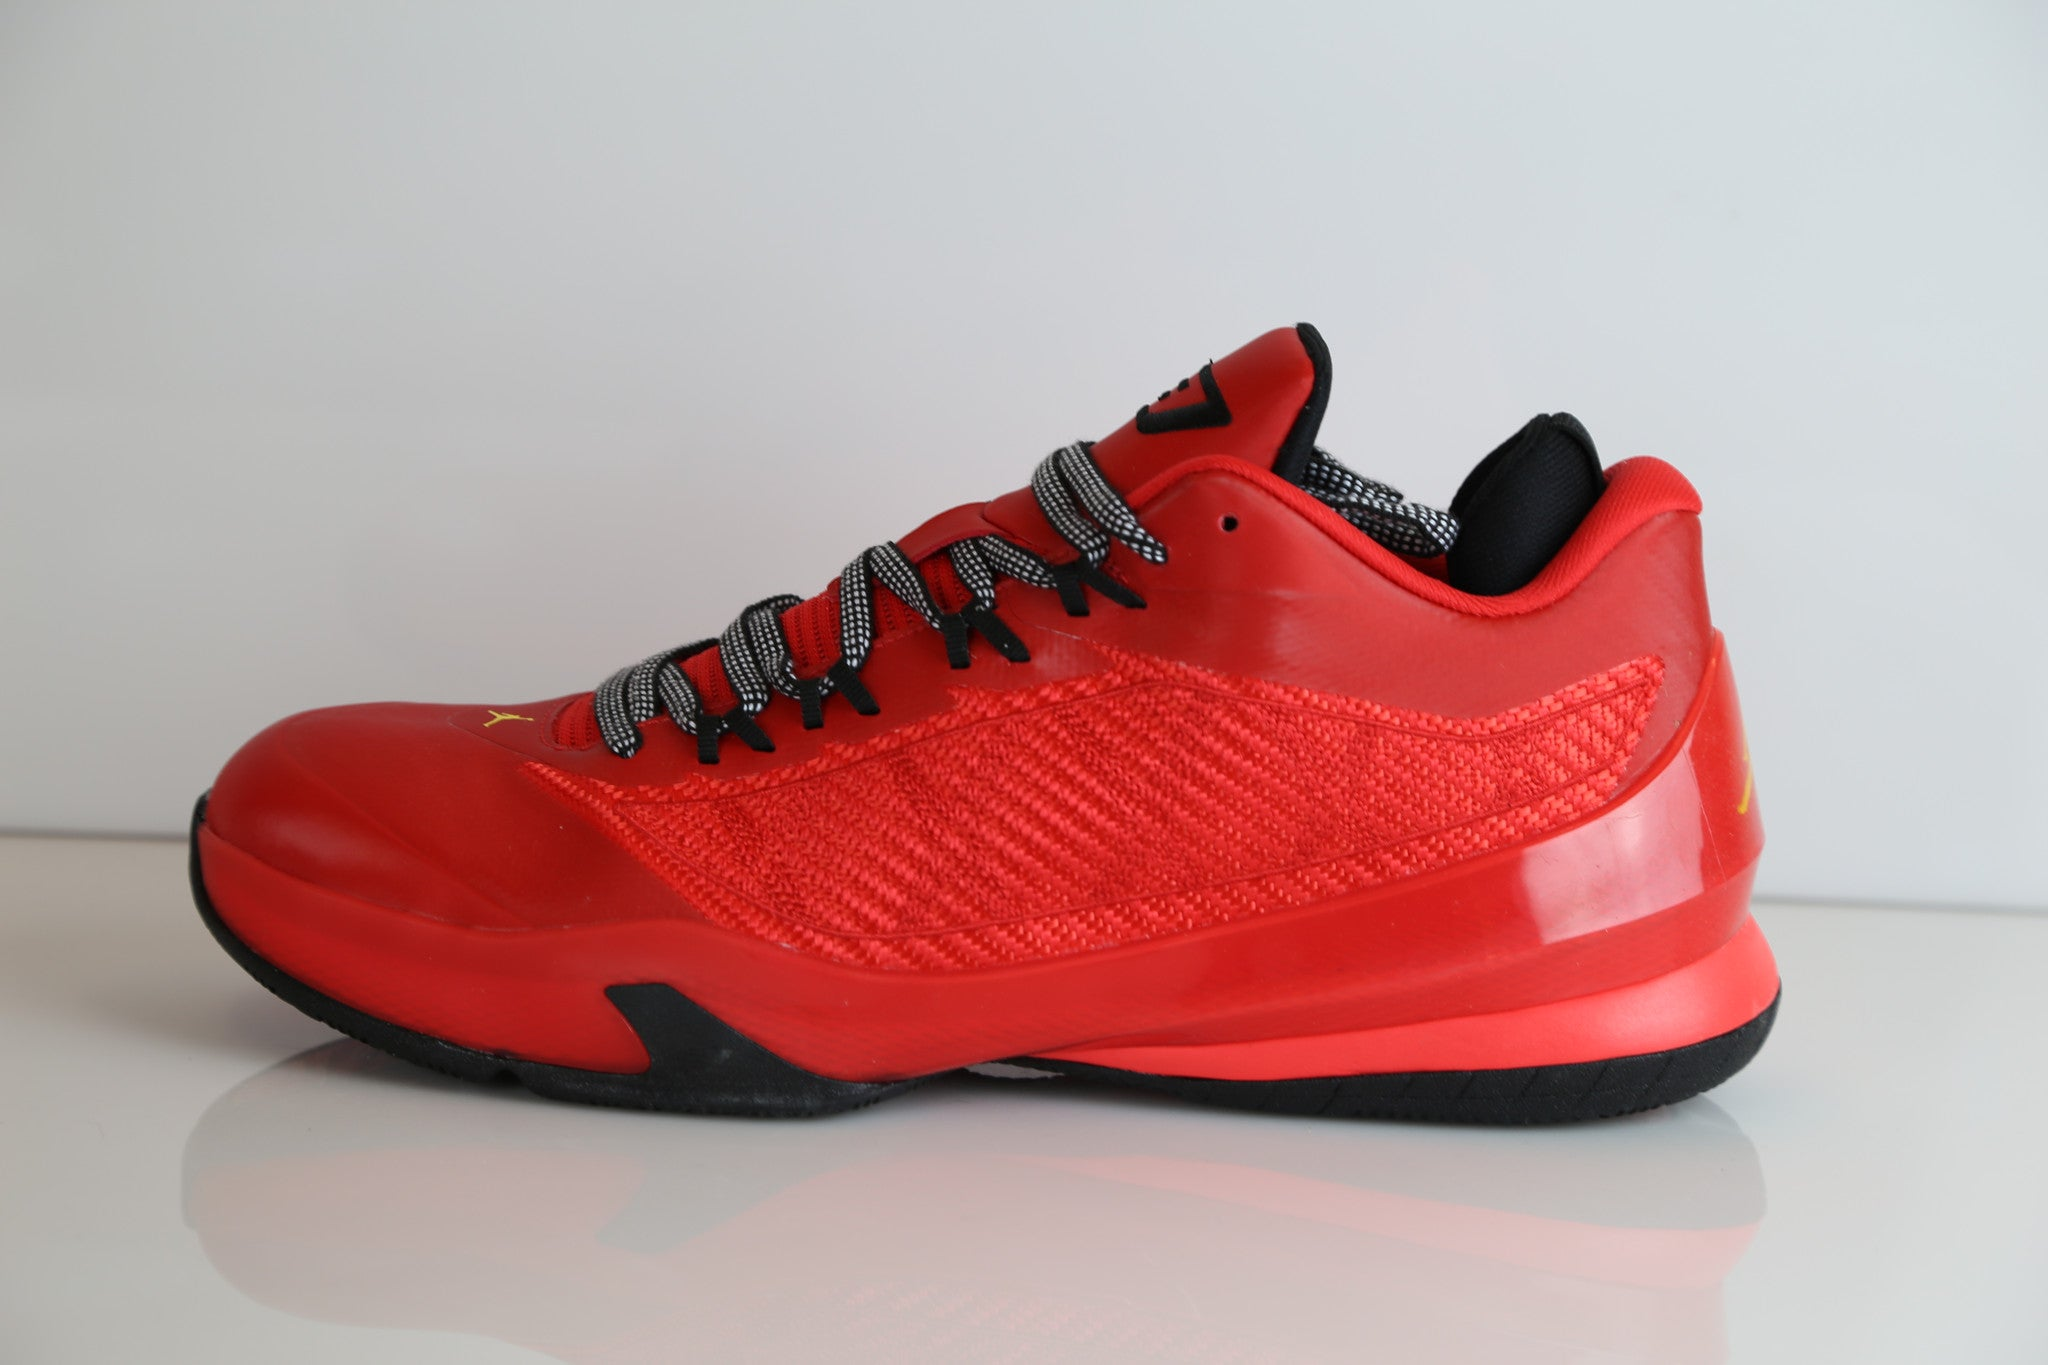 c5edd7681ffd0f Nik Air Jordan CP3.VIII Challlenge Red Tour Yellow 684855-605 ...